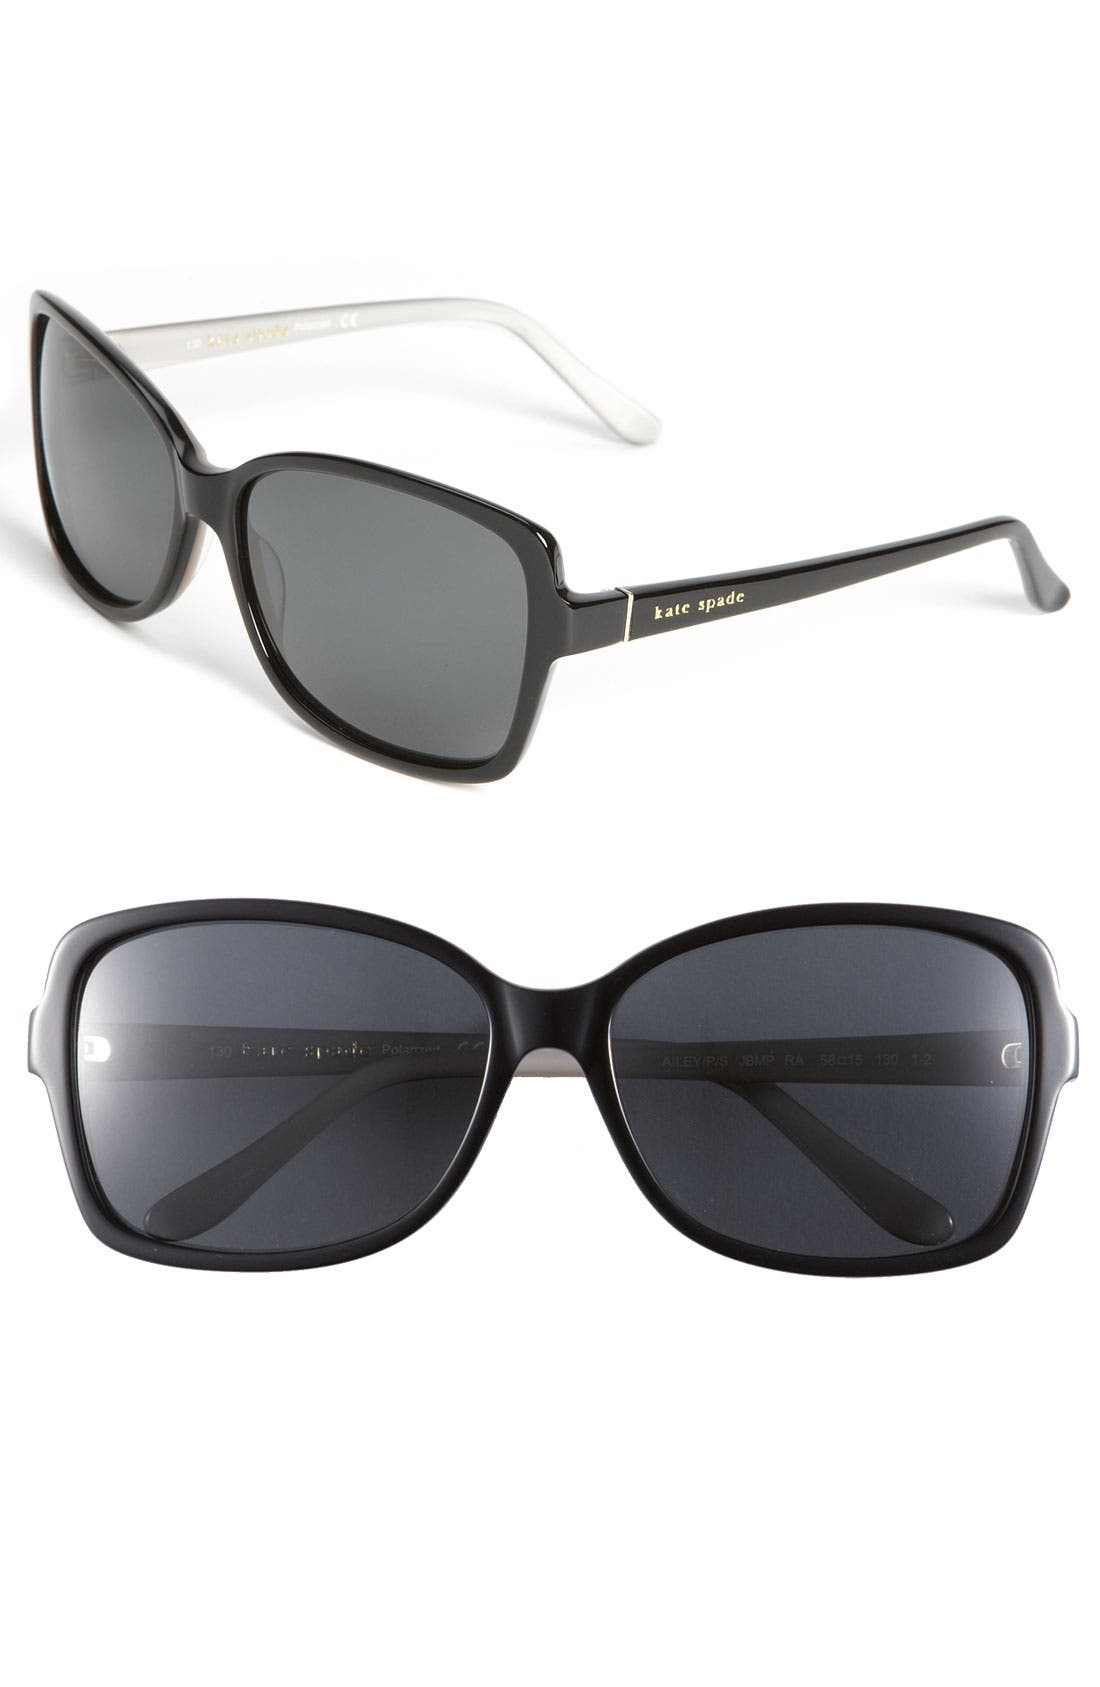 Alternate Image 1 Selected - kate spade new york 'ailey' 58mm polarized sunglasses